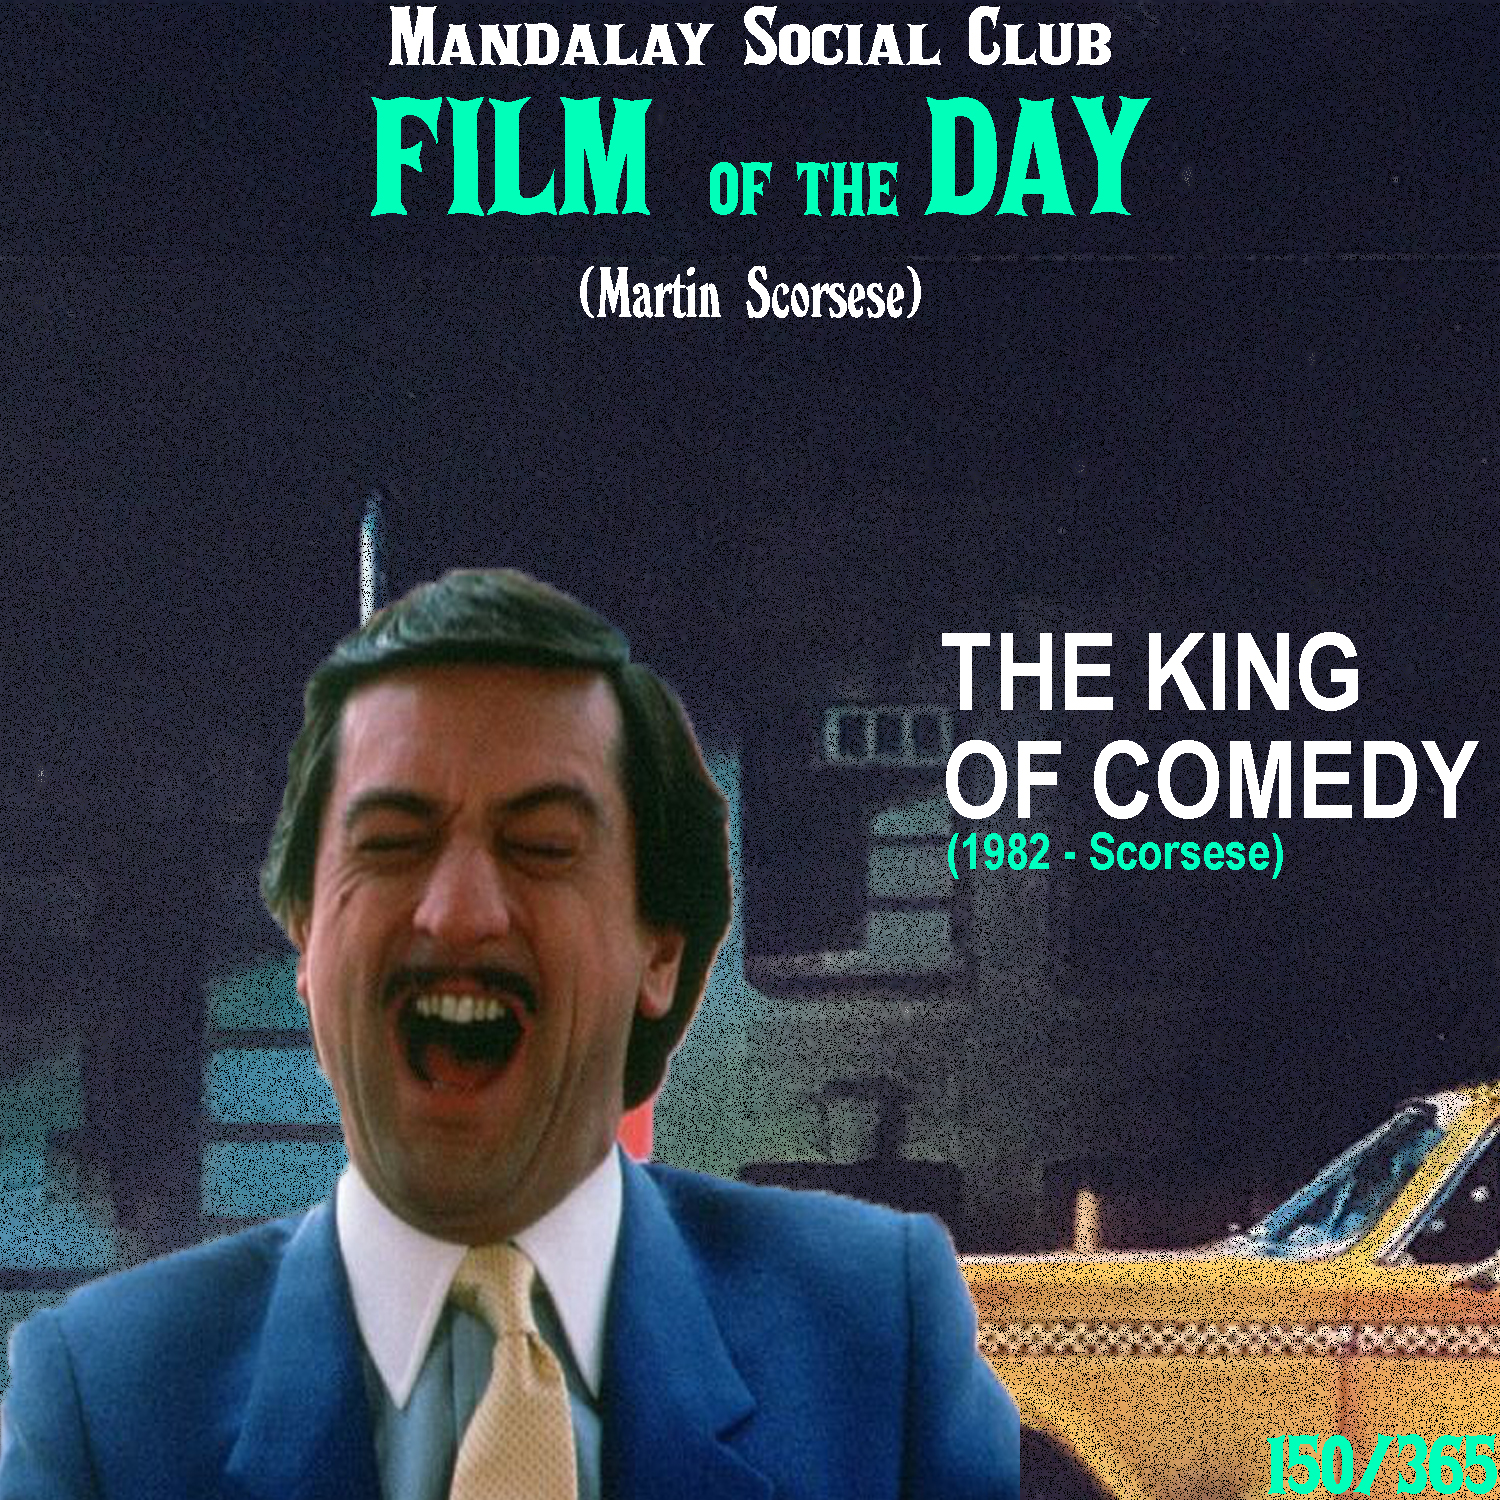 THE KING OF COMEDY     (dir. Martin Scorsese)   A horrifically overlooked film of Scorsese's,  The King of Comedy  is a sharp-witted and masterful approach to delusional narcissism.  Robert DeNiro stars as Rupert Pupkin, a delusional wanna-be comedian who will do anything, besides actually work, to get the attention of his favorite comic Jerry Langford, played by Jerry Lewis in a fictionalized character of himself.  Scorsese's inventive use of the camera is supplemented perfectly with the fine line between reality and delusion that Rupert spends the film treading on.  The King of Comedy  is not only a hilarious film, but it leaves so much open for interpretation that you can't help but continue thinking about it long after watching it.    5/5     WATCH :  Prime Video